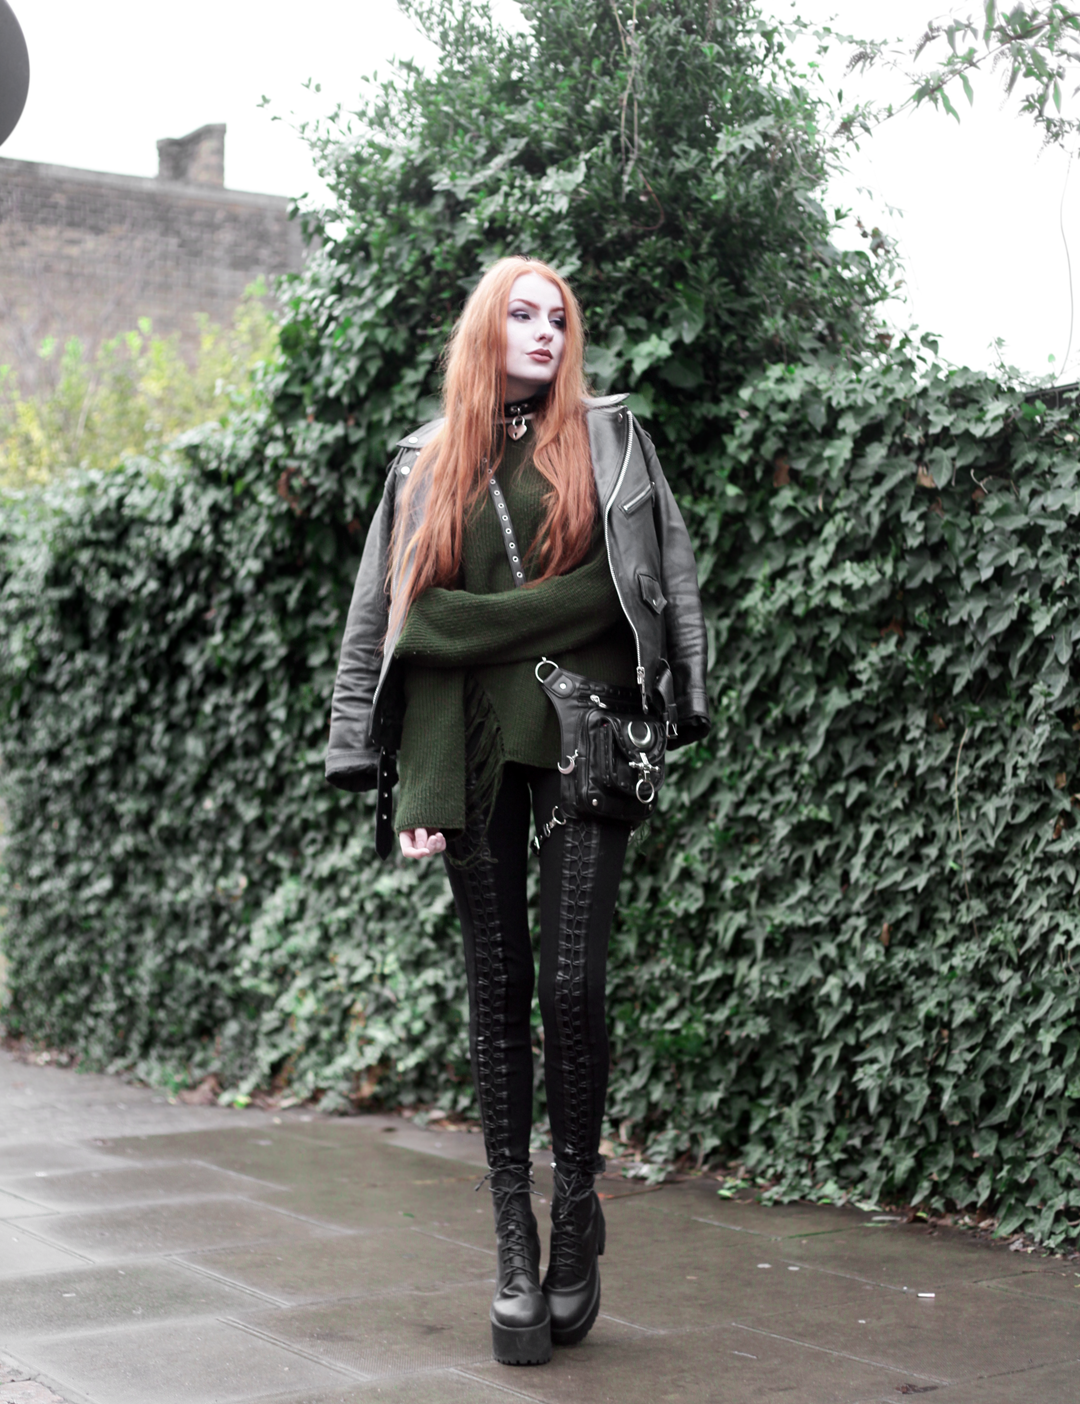 Olivia Emily wears Biker Jacket, Asos Bones Oversized jumper, Restyle pl harness bag, Stylestalker lace up leggings trousers, Unif scosche boots